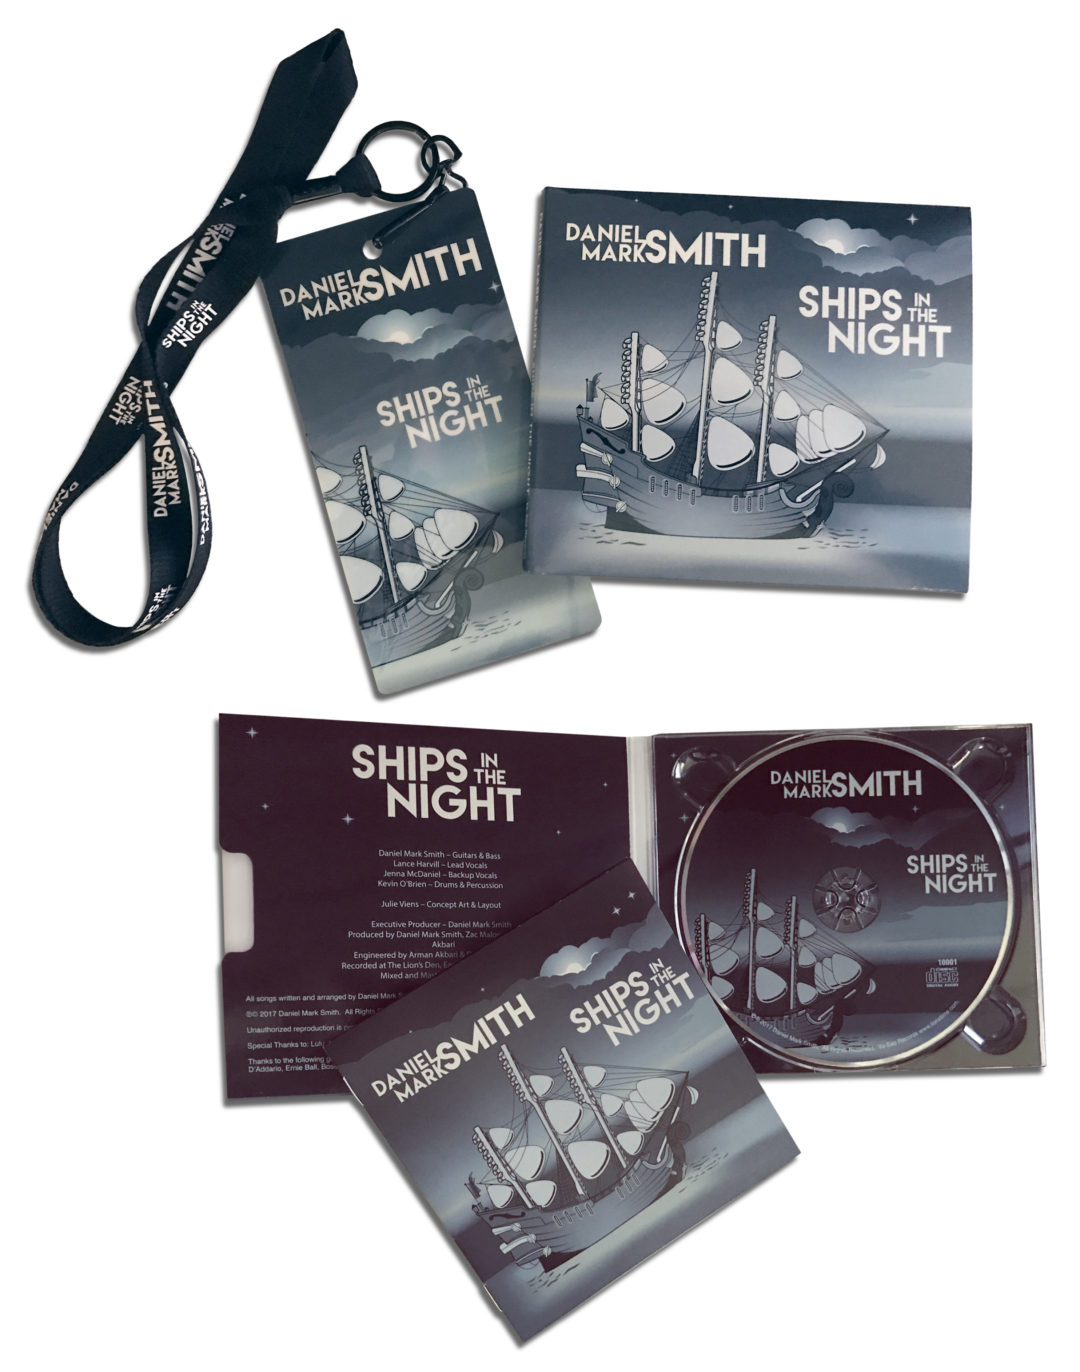 Ships in the Night DVD Packaging and Collateral